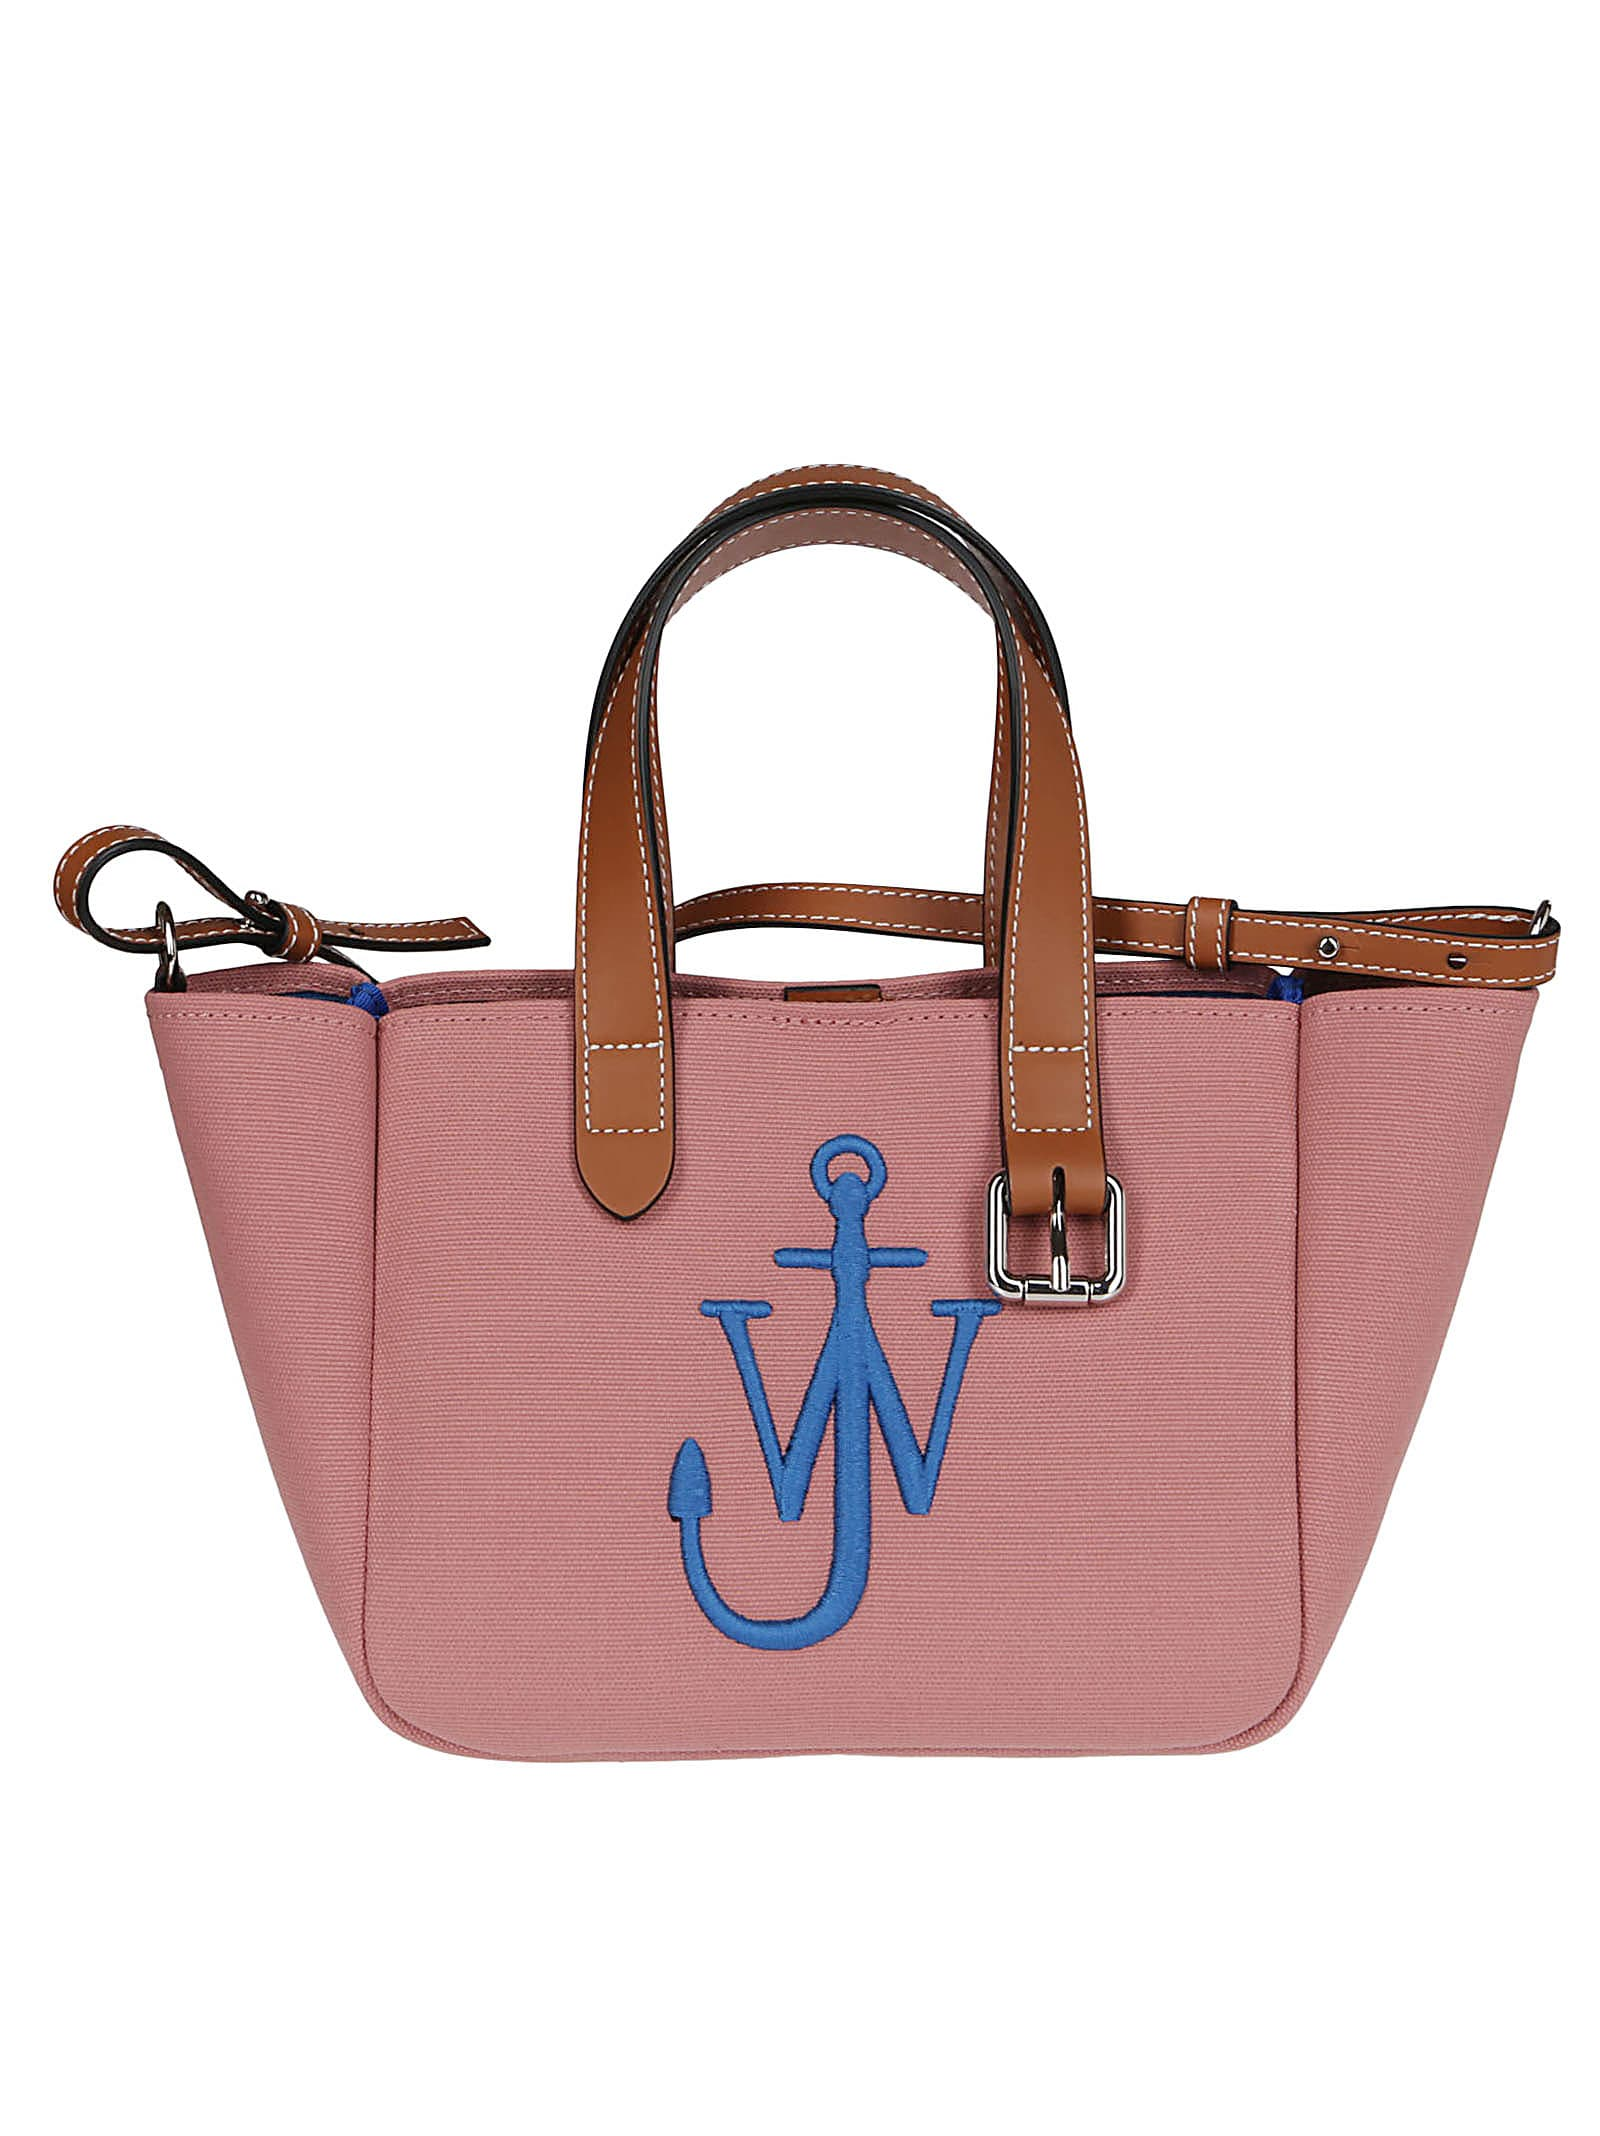 Jw Anderson Totes PINK LEATHER TOTE BAG